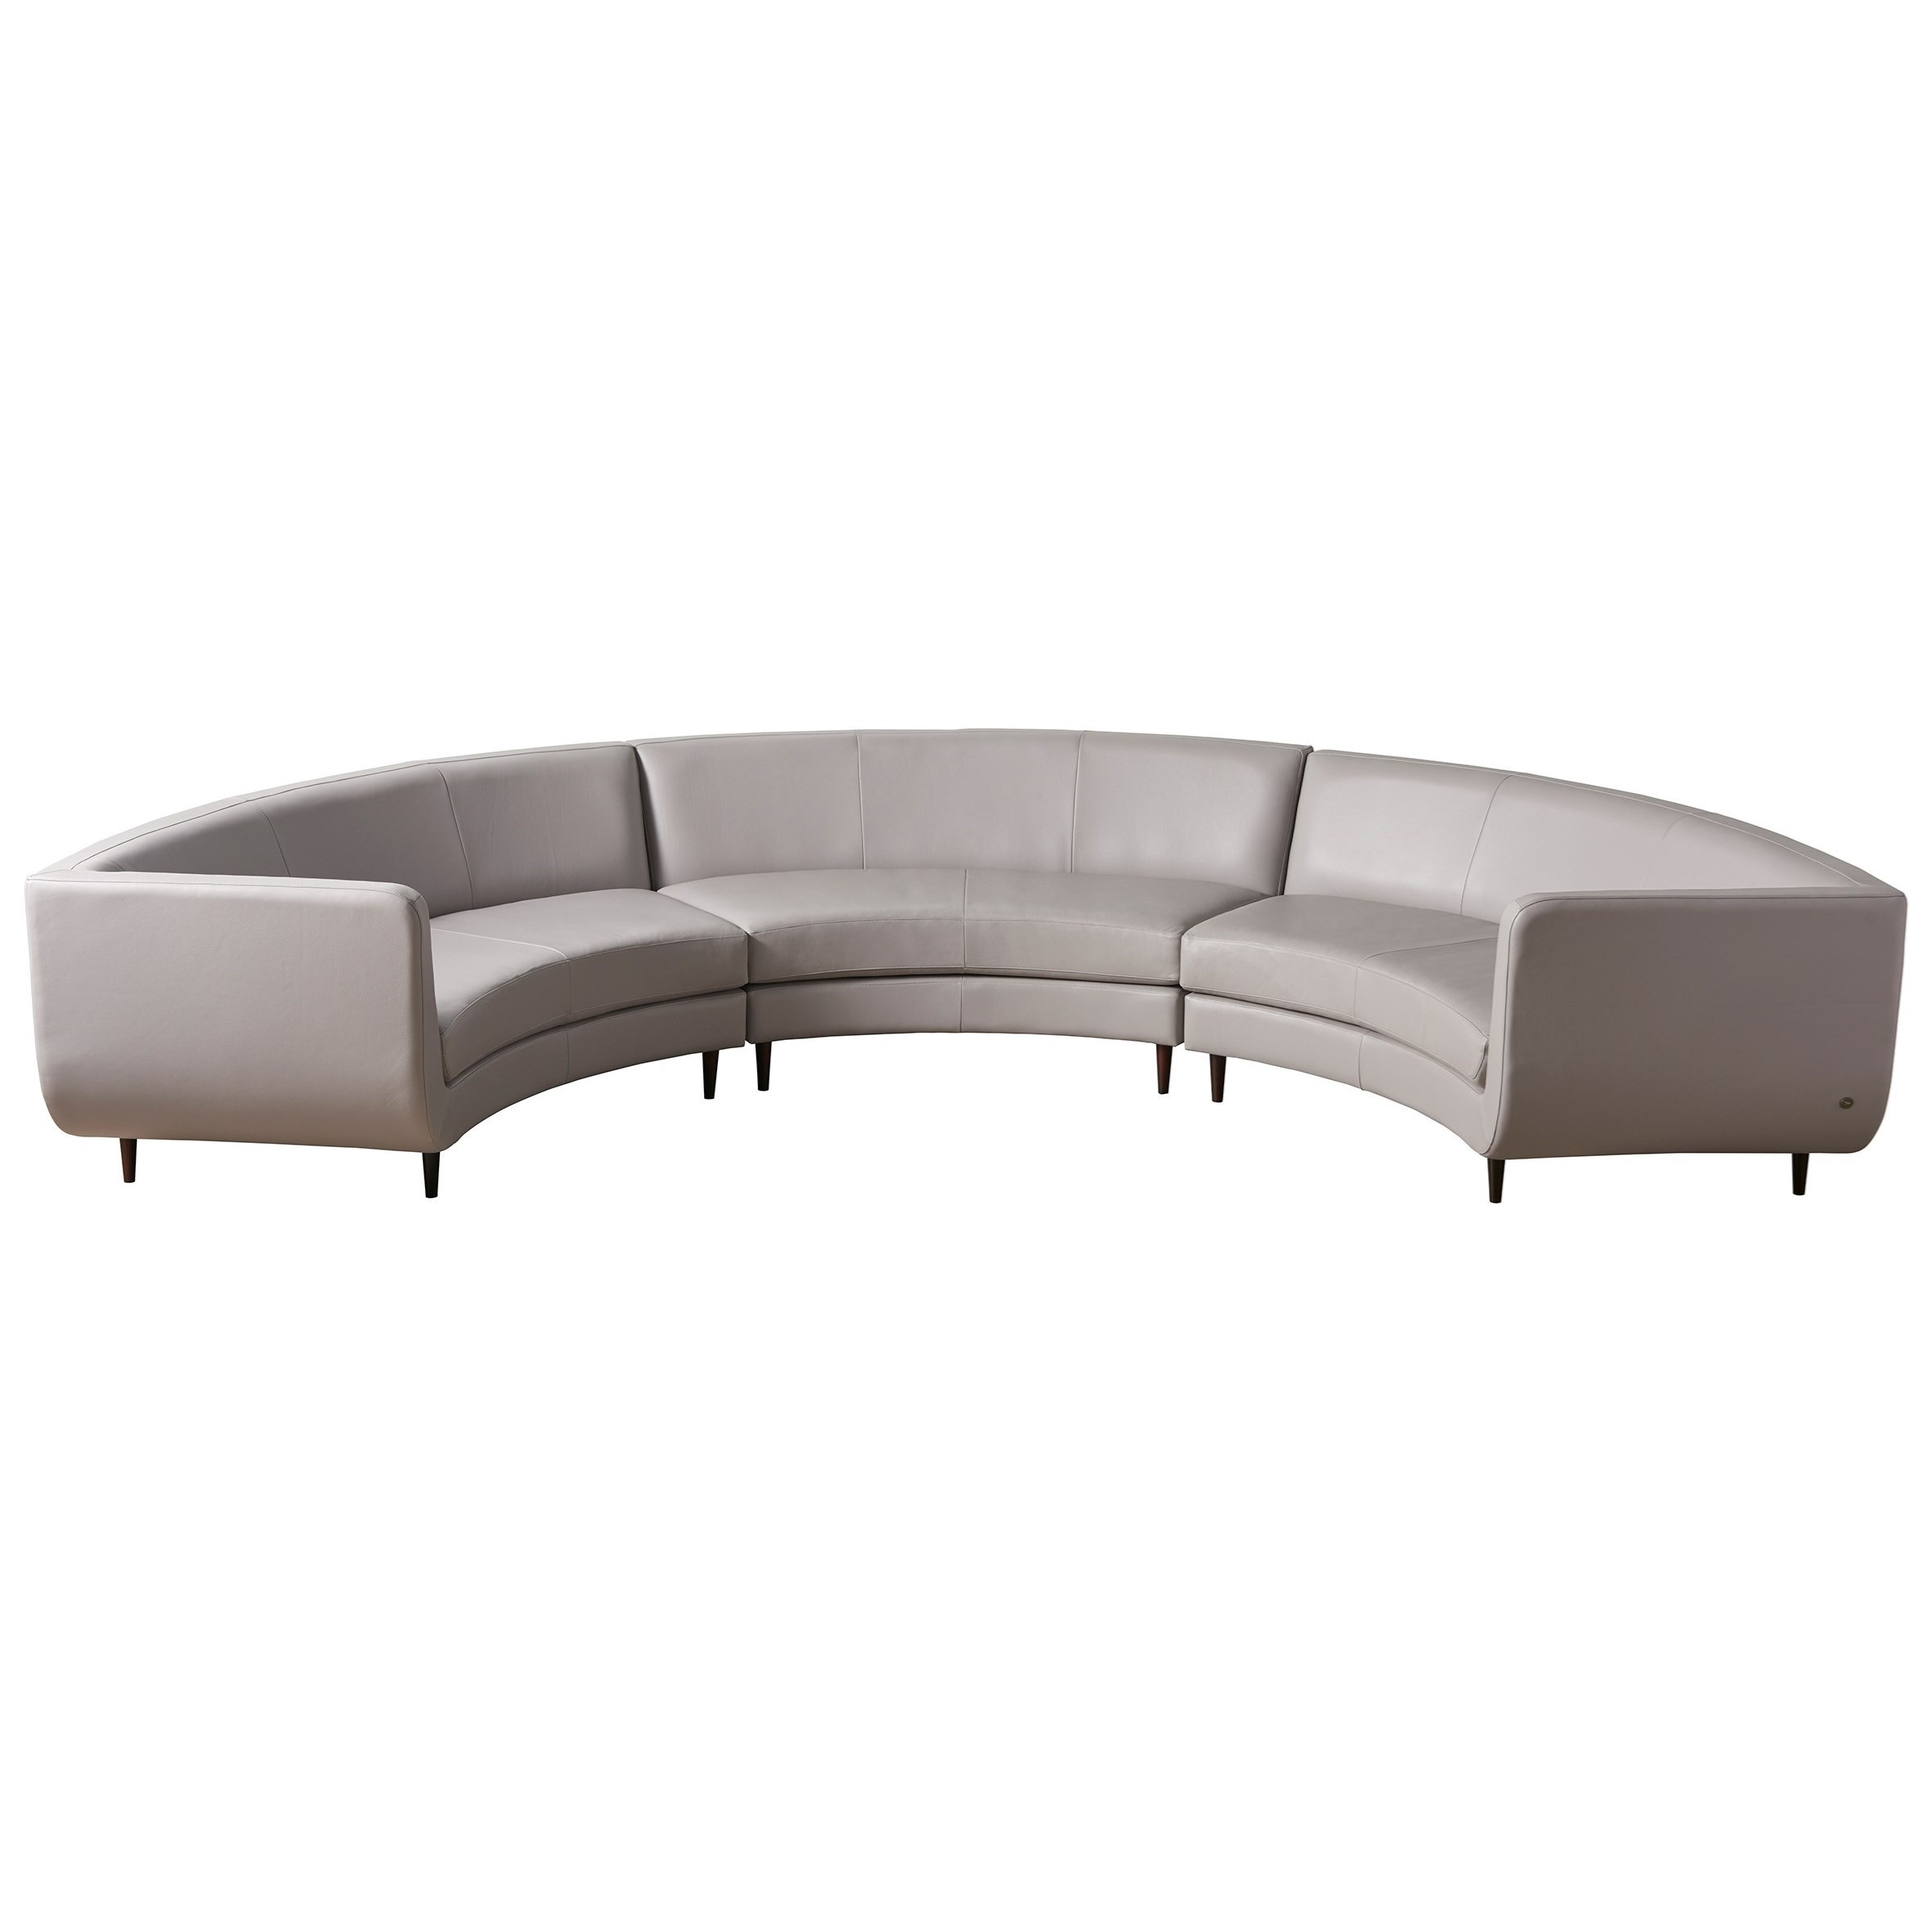 American Leather Menlo Park Contemporary 6 Seat Curved